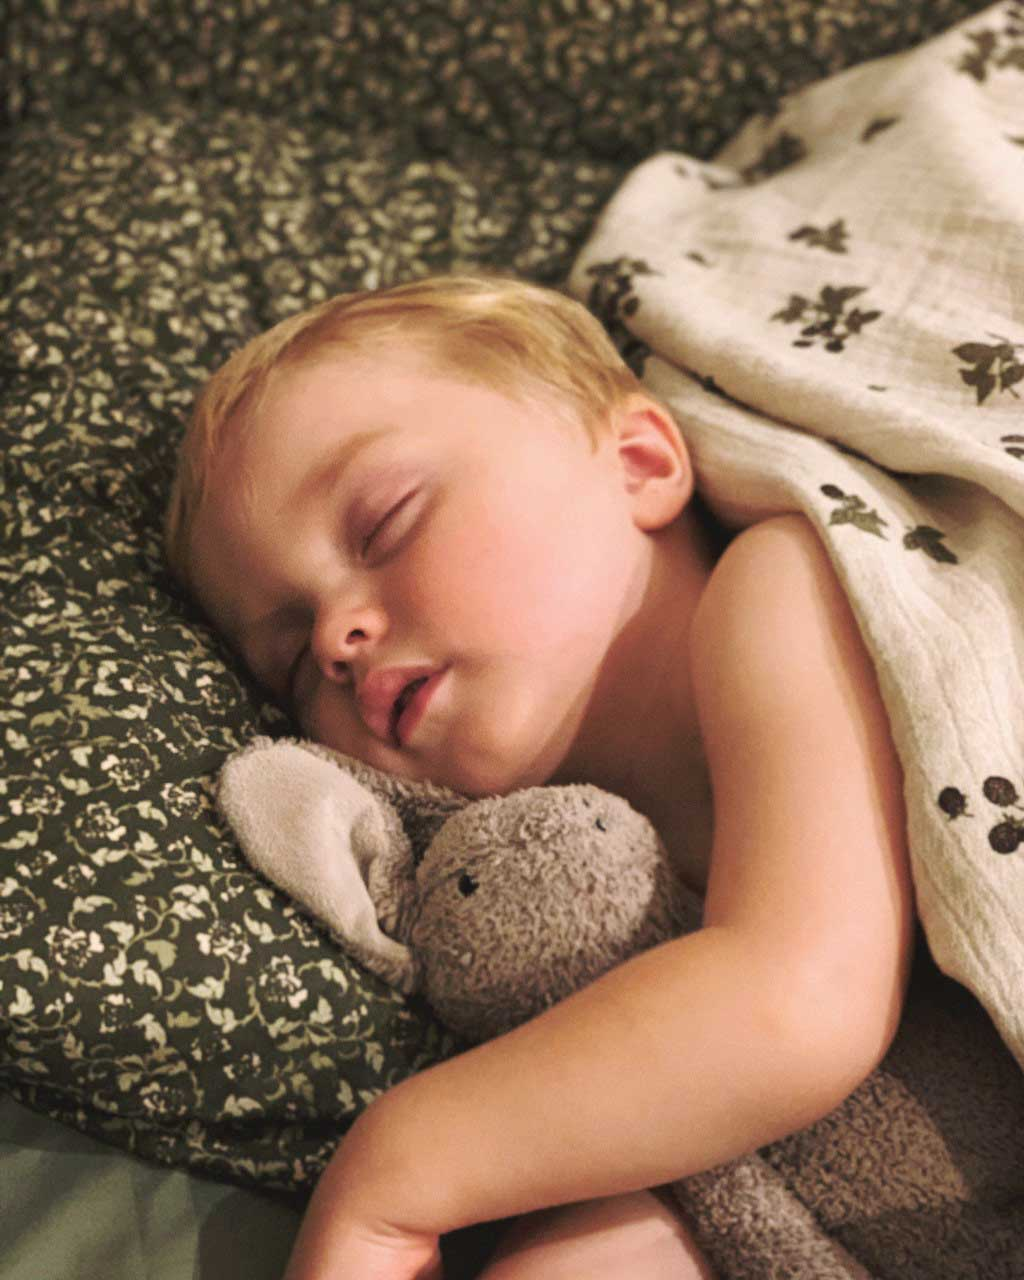 Lovisa's son Nils snuggled up with his bunny in Garbo&Friends bedding